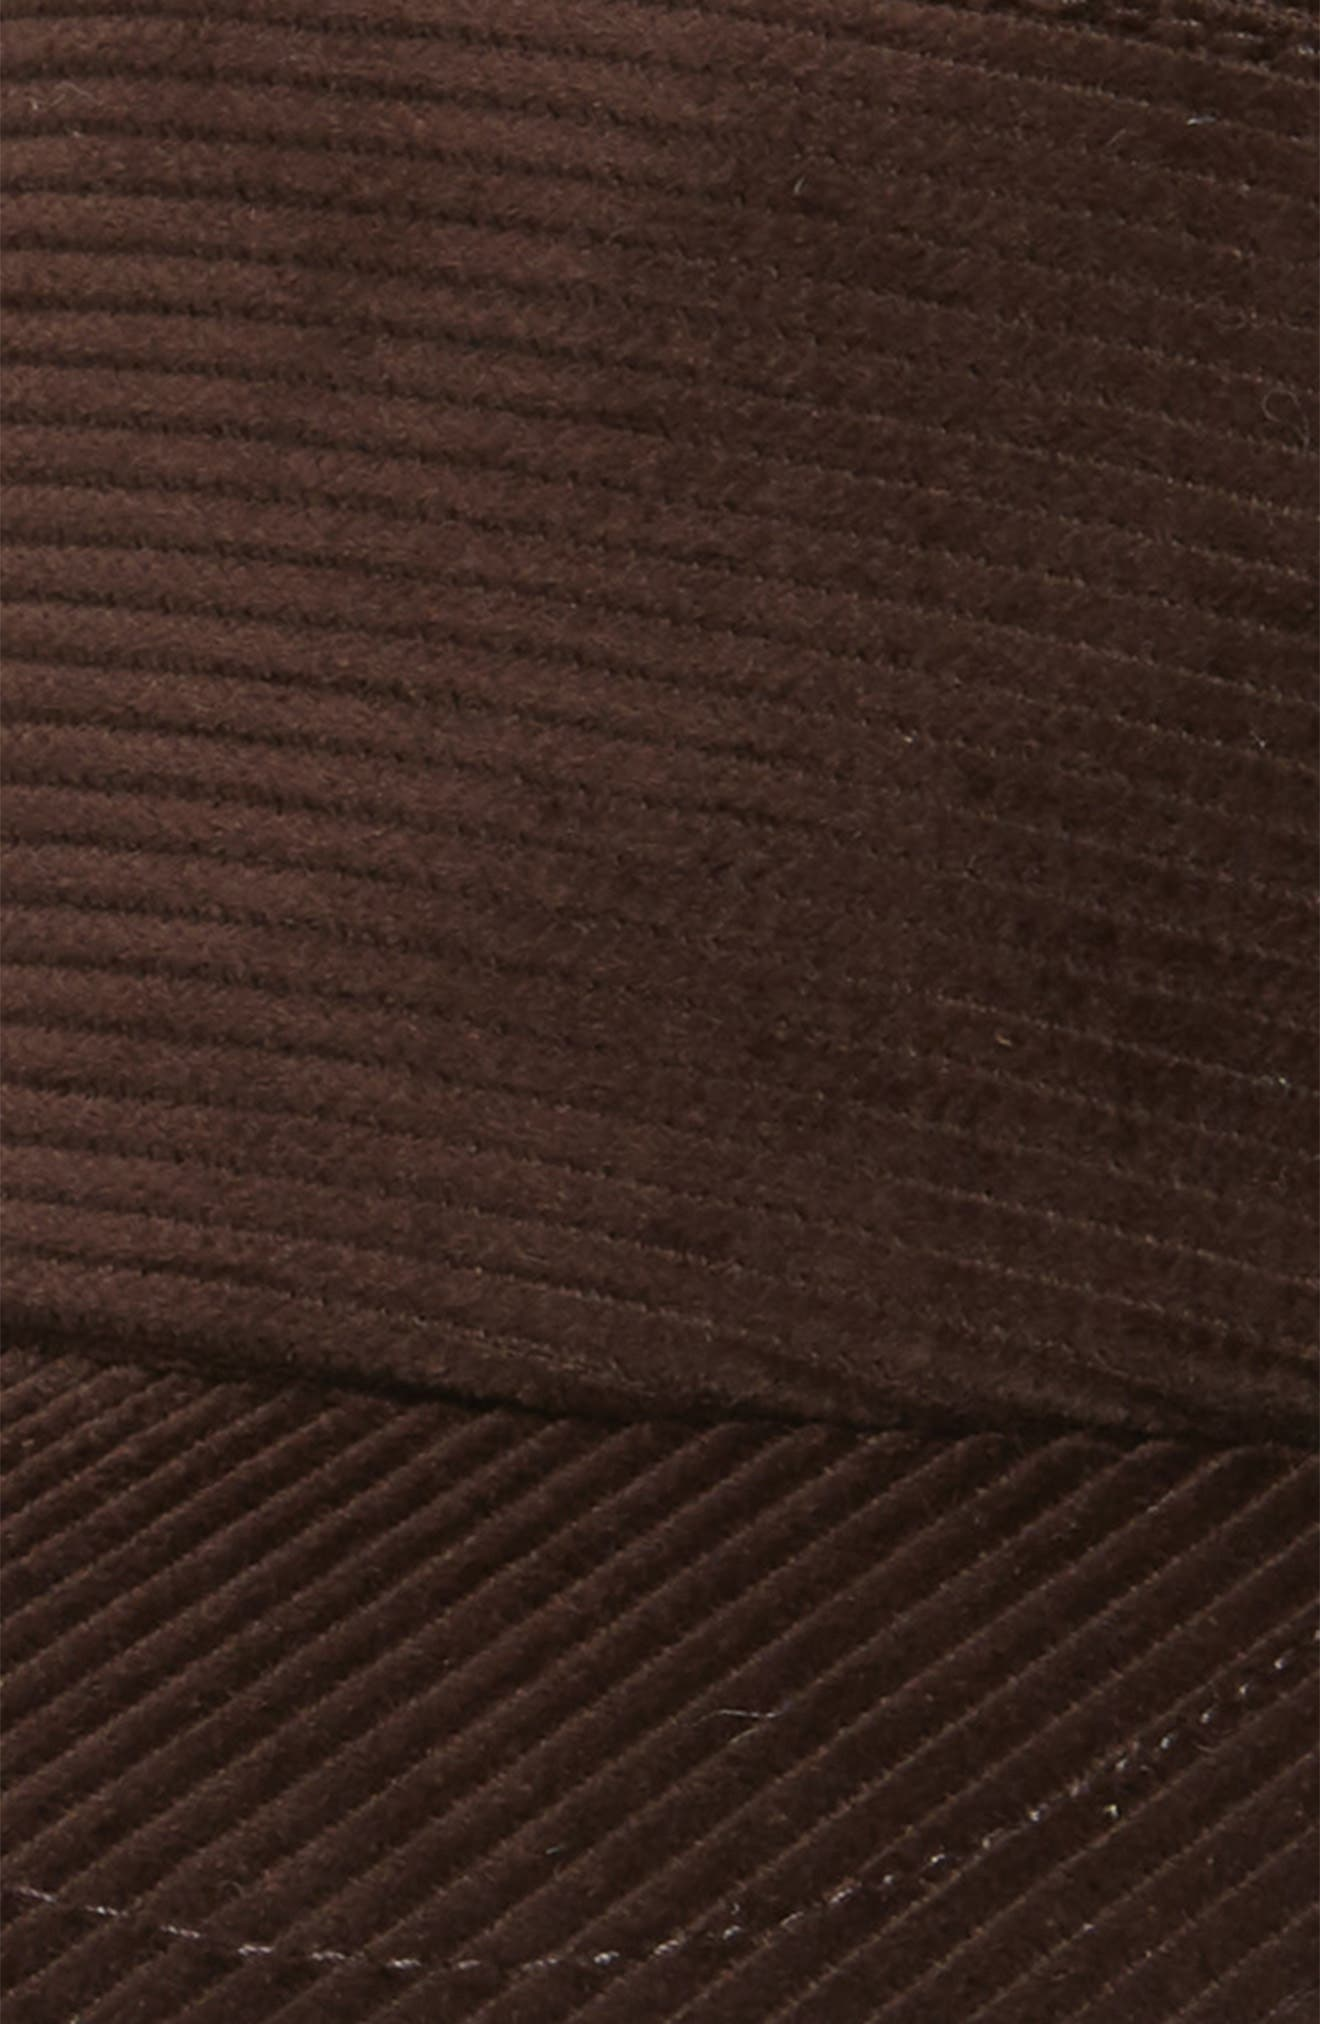 Corduroy Ball Cap,                             Alternate thumbnail 3, color,                             CHOCOLATE